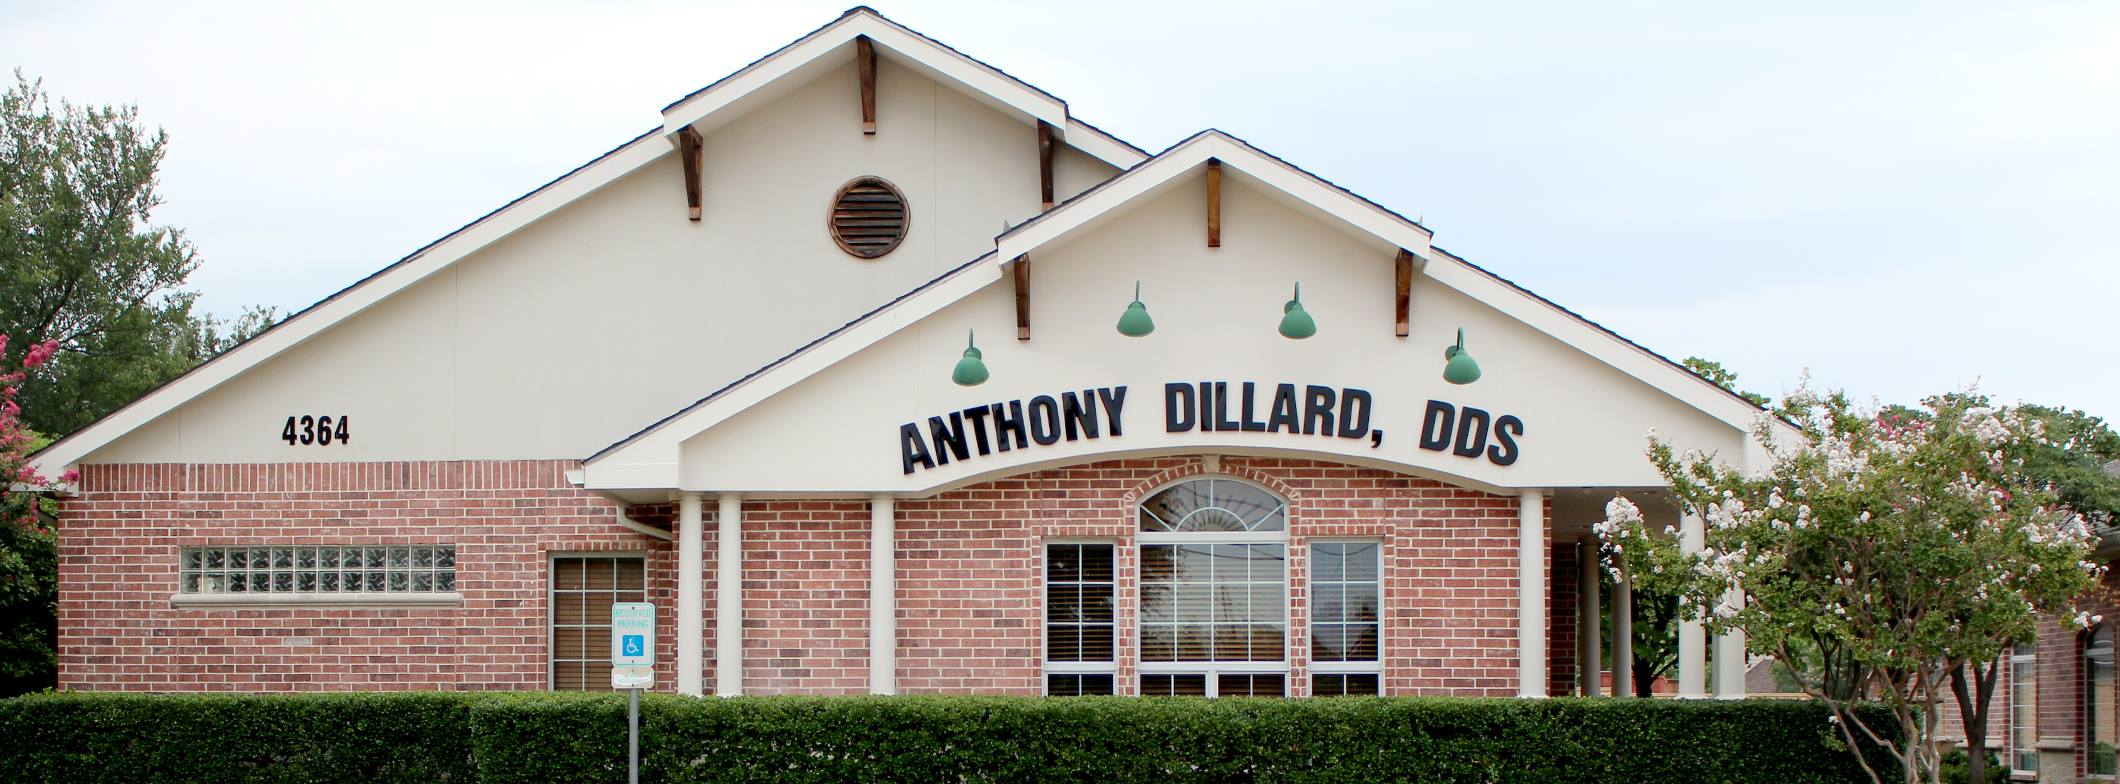 Anthony Dillard, DDS Family & Cosmetic Dentistry